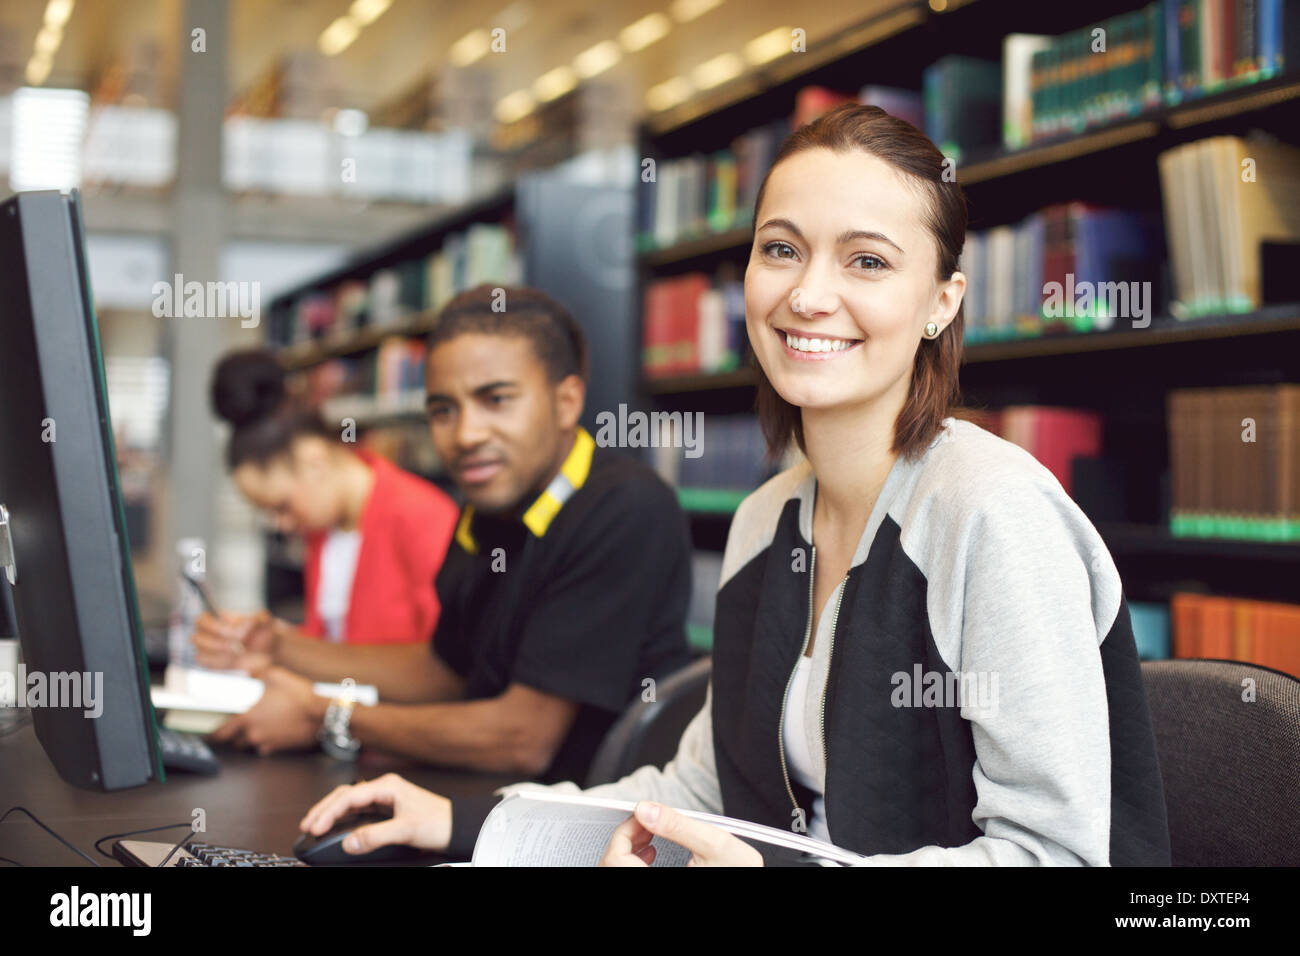 Beautiful young caucasian student sitting at table with computer looking at camera smiling. Young university students. Stock Photo